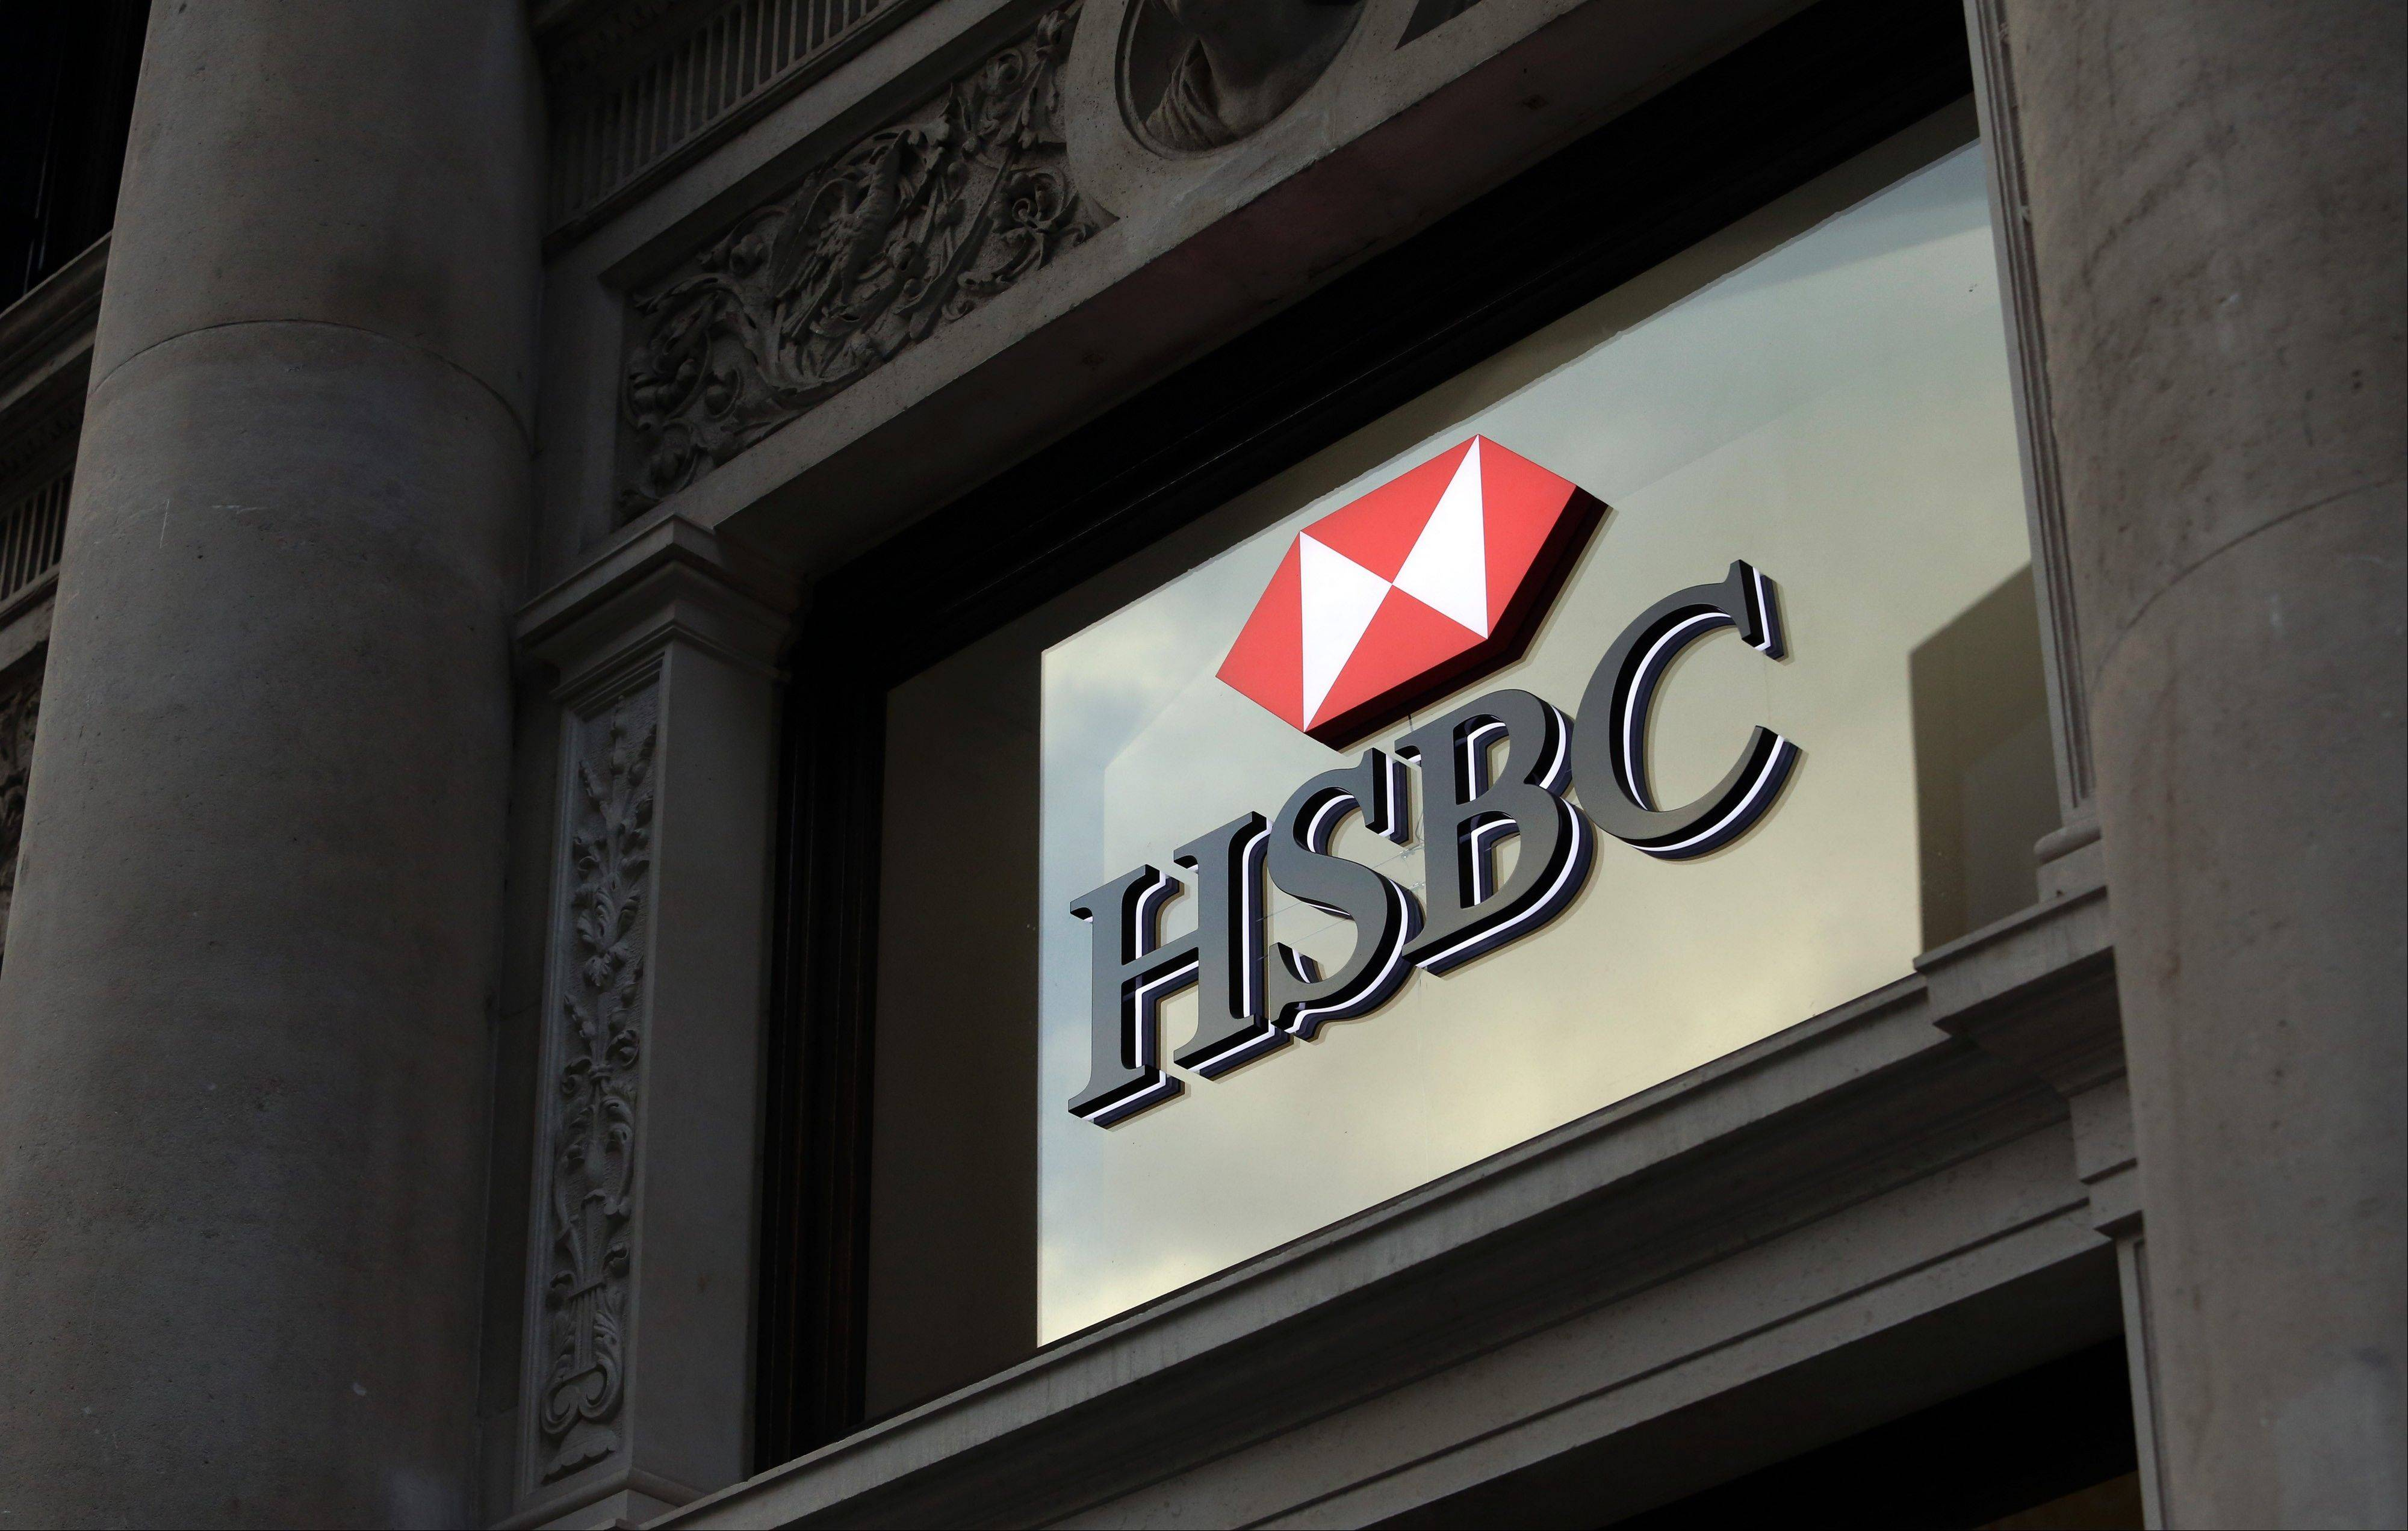 HSBC Holdings Plc, Europe's largest bank, agreed to pay $1.92 billion to settle U.S. probes of money laundering in the largest such accord ever.